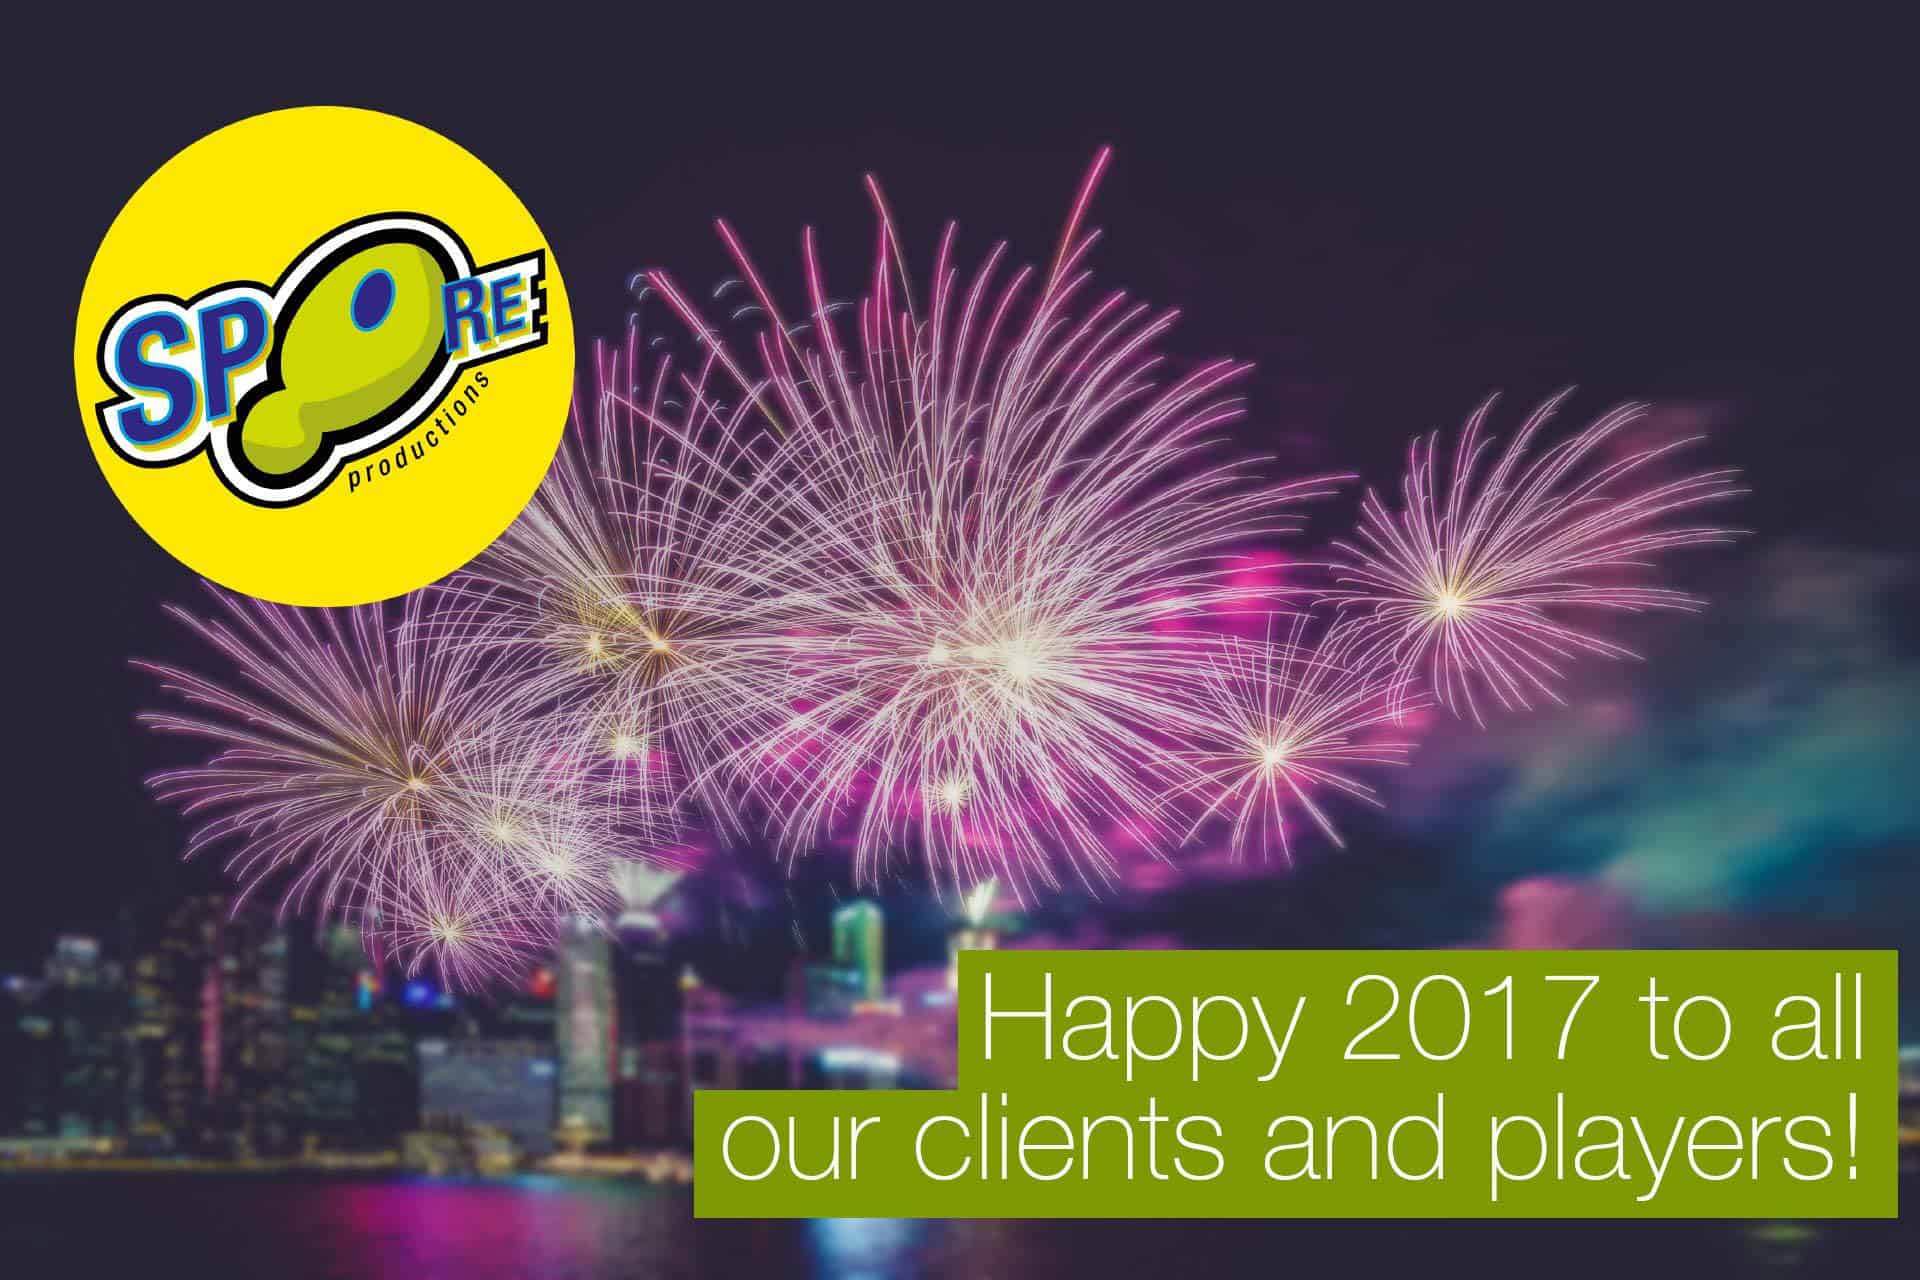 Happy 2017 new year from SPORE Productions